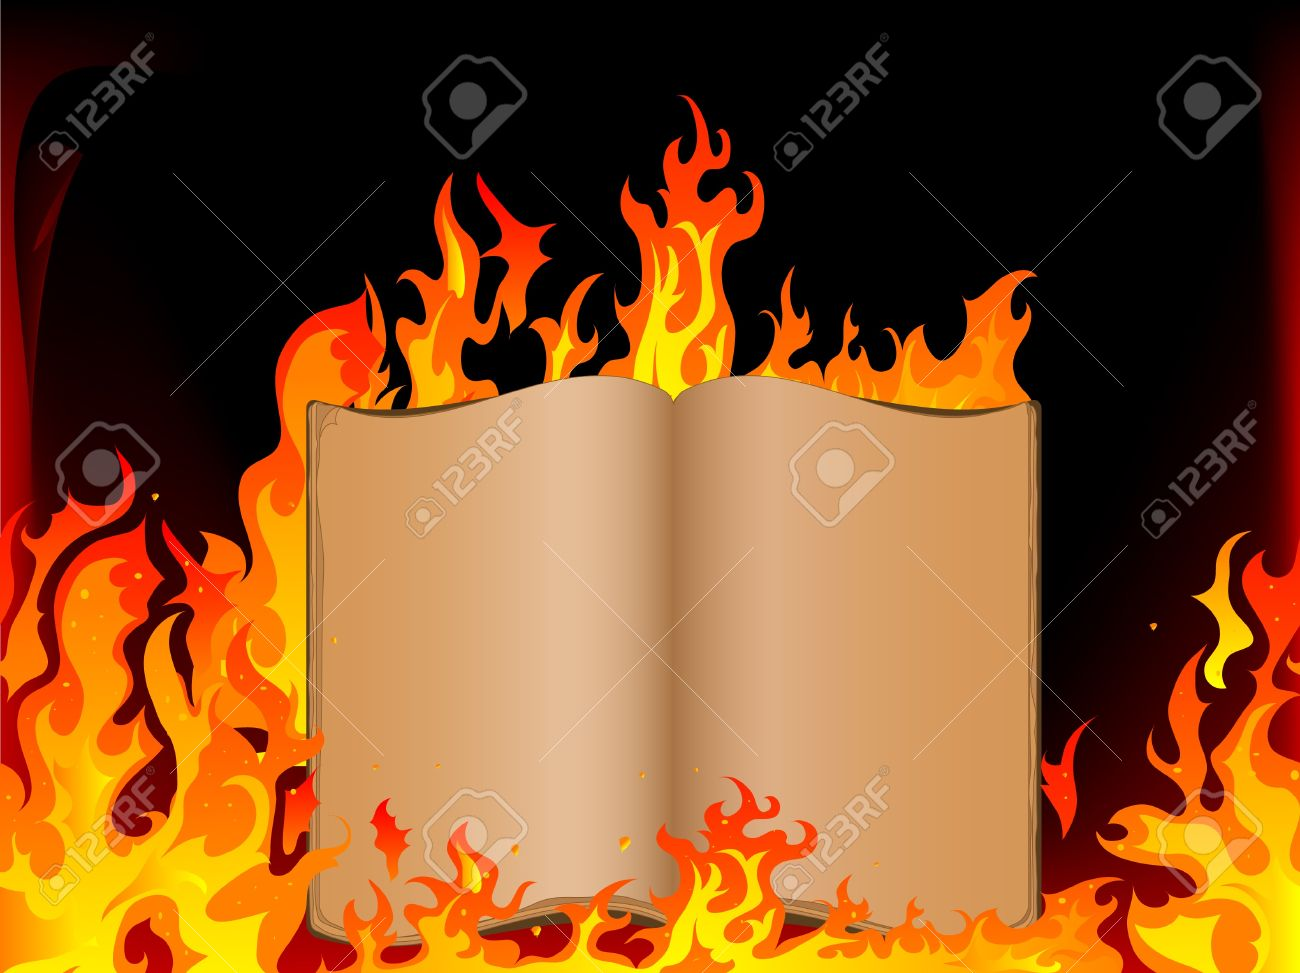 Old open book in fire